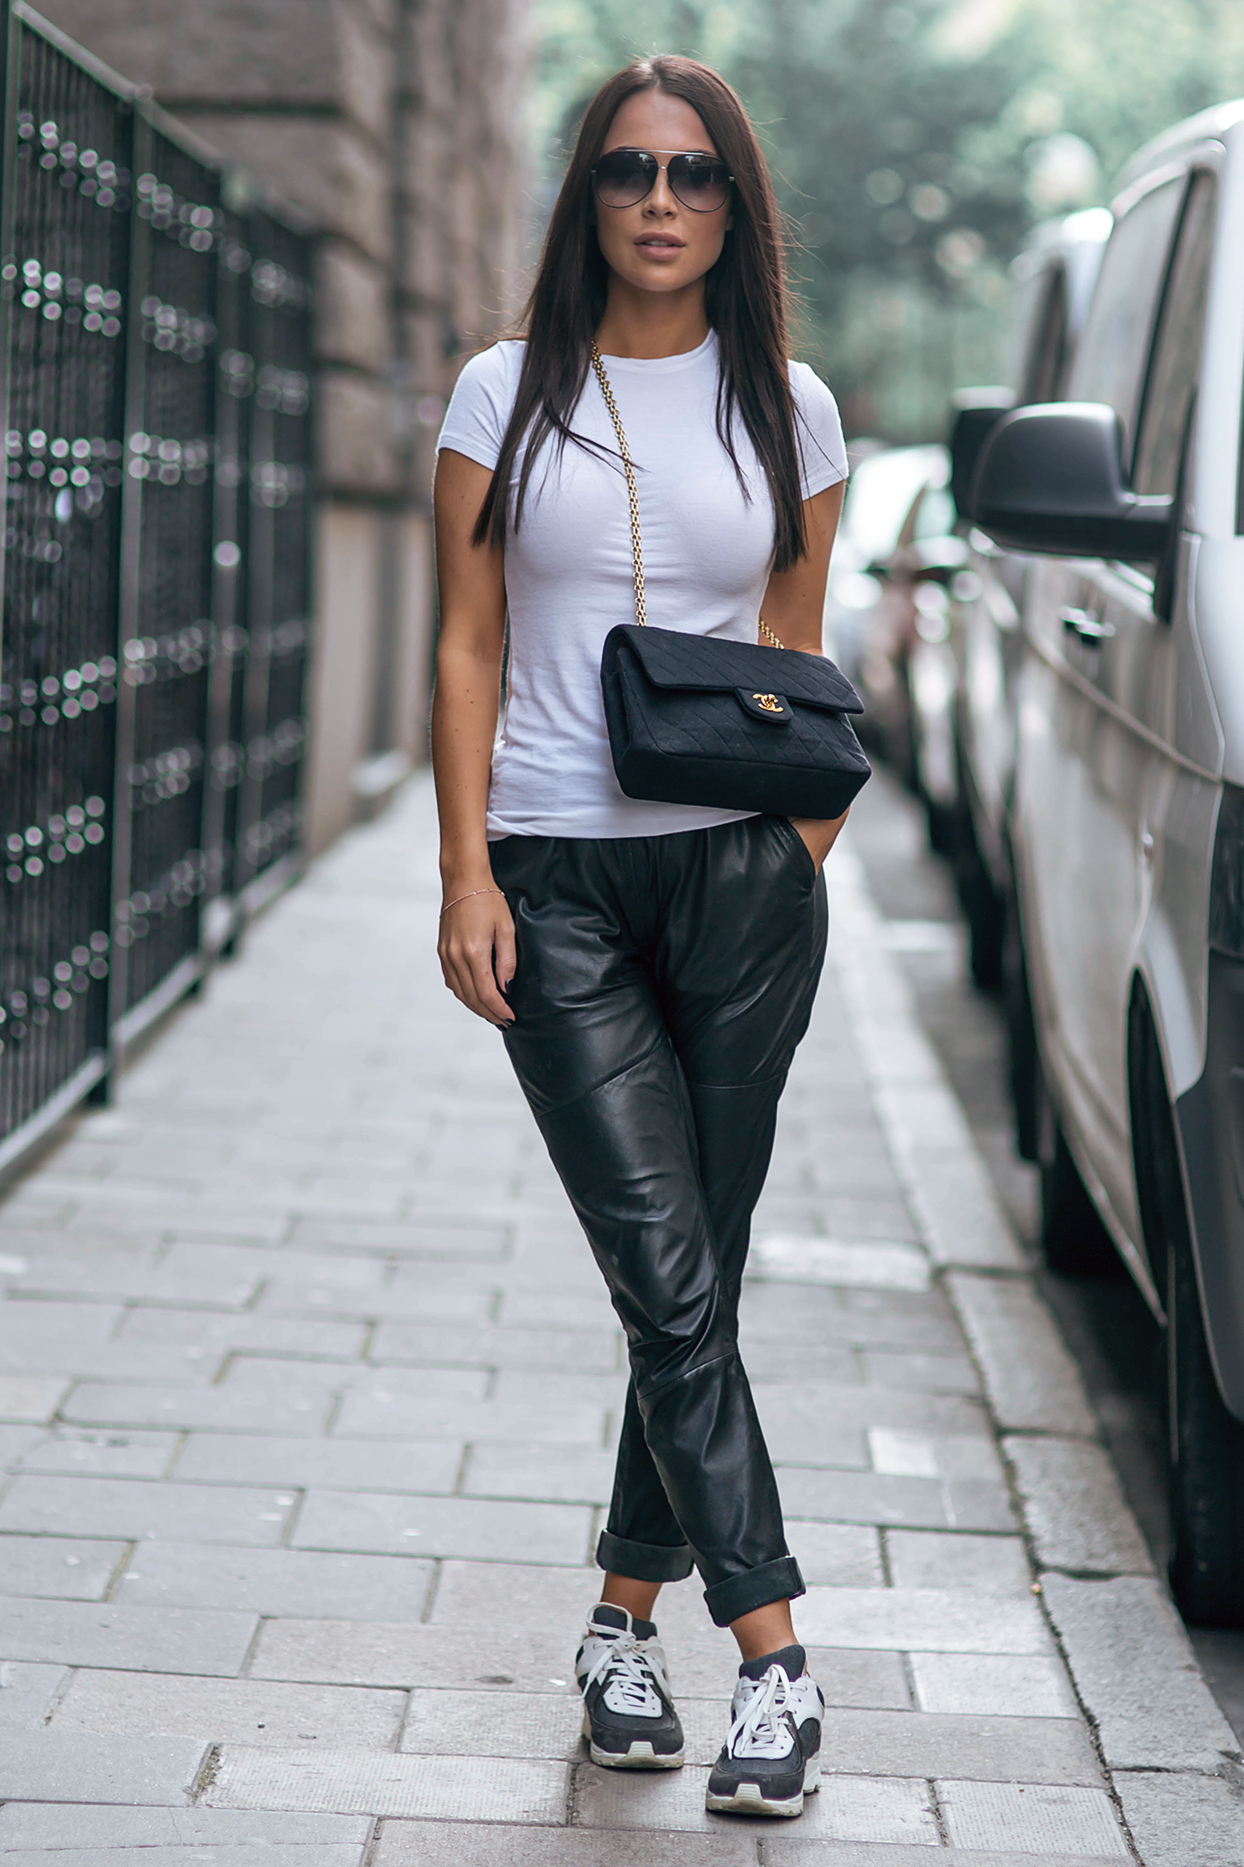 Wear the black and white trend like Johanna Olsson, and pair a simple white tee with leather trousers and monochrome sneakers. This casual style is perfect for any outing! Trousers: Designers Remix, Tee: ATM, Sneakers/Bag: Chanel.